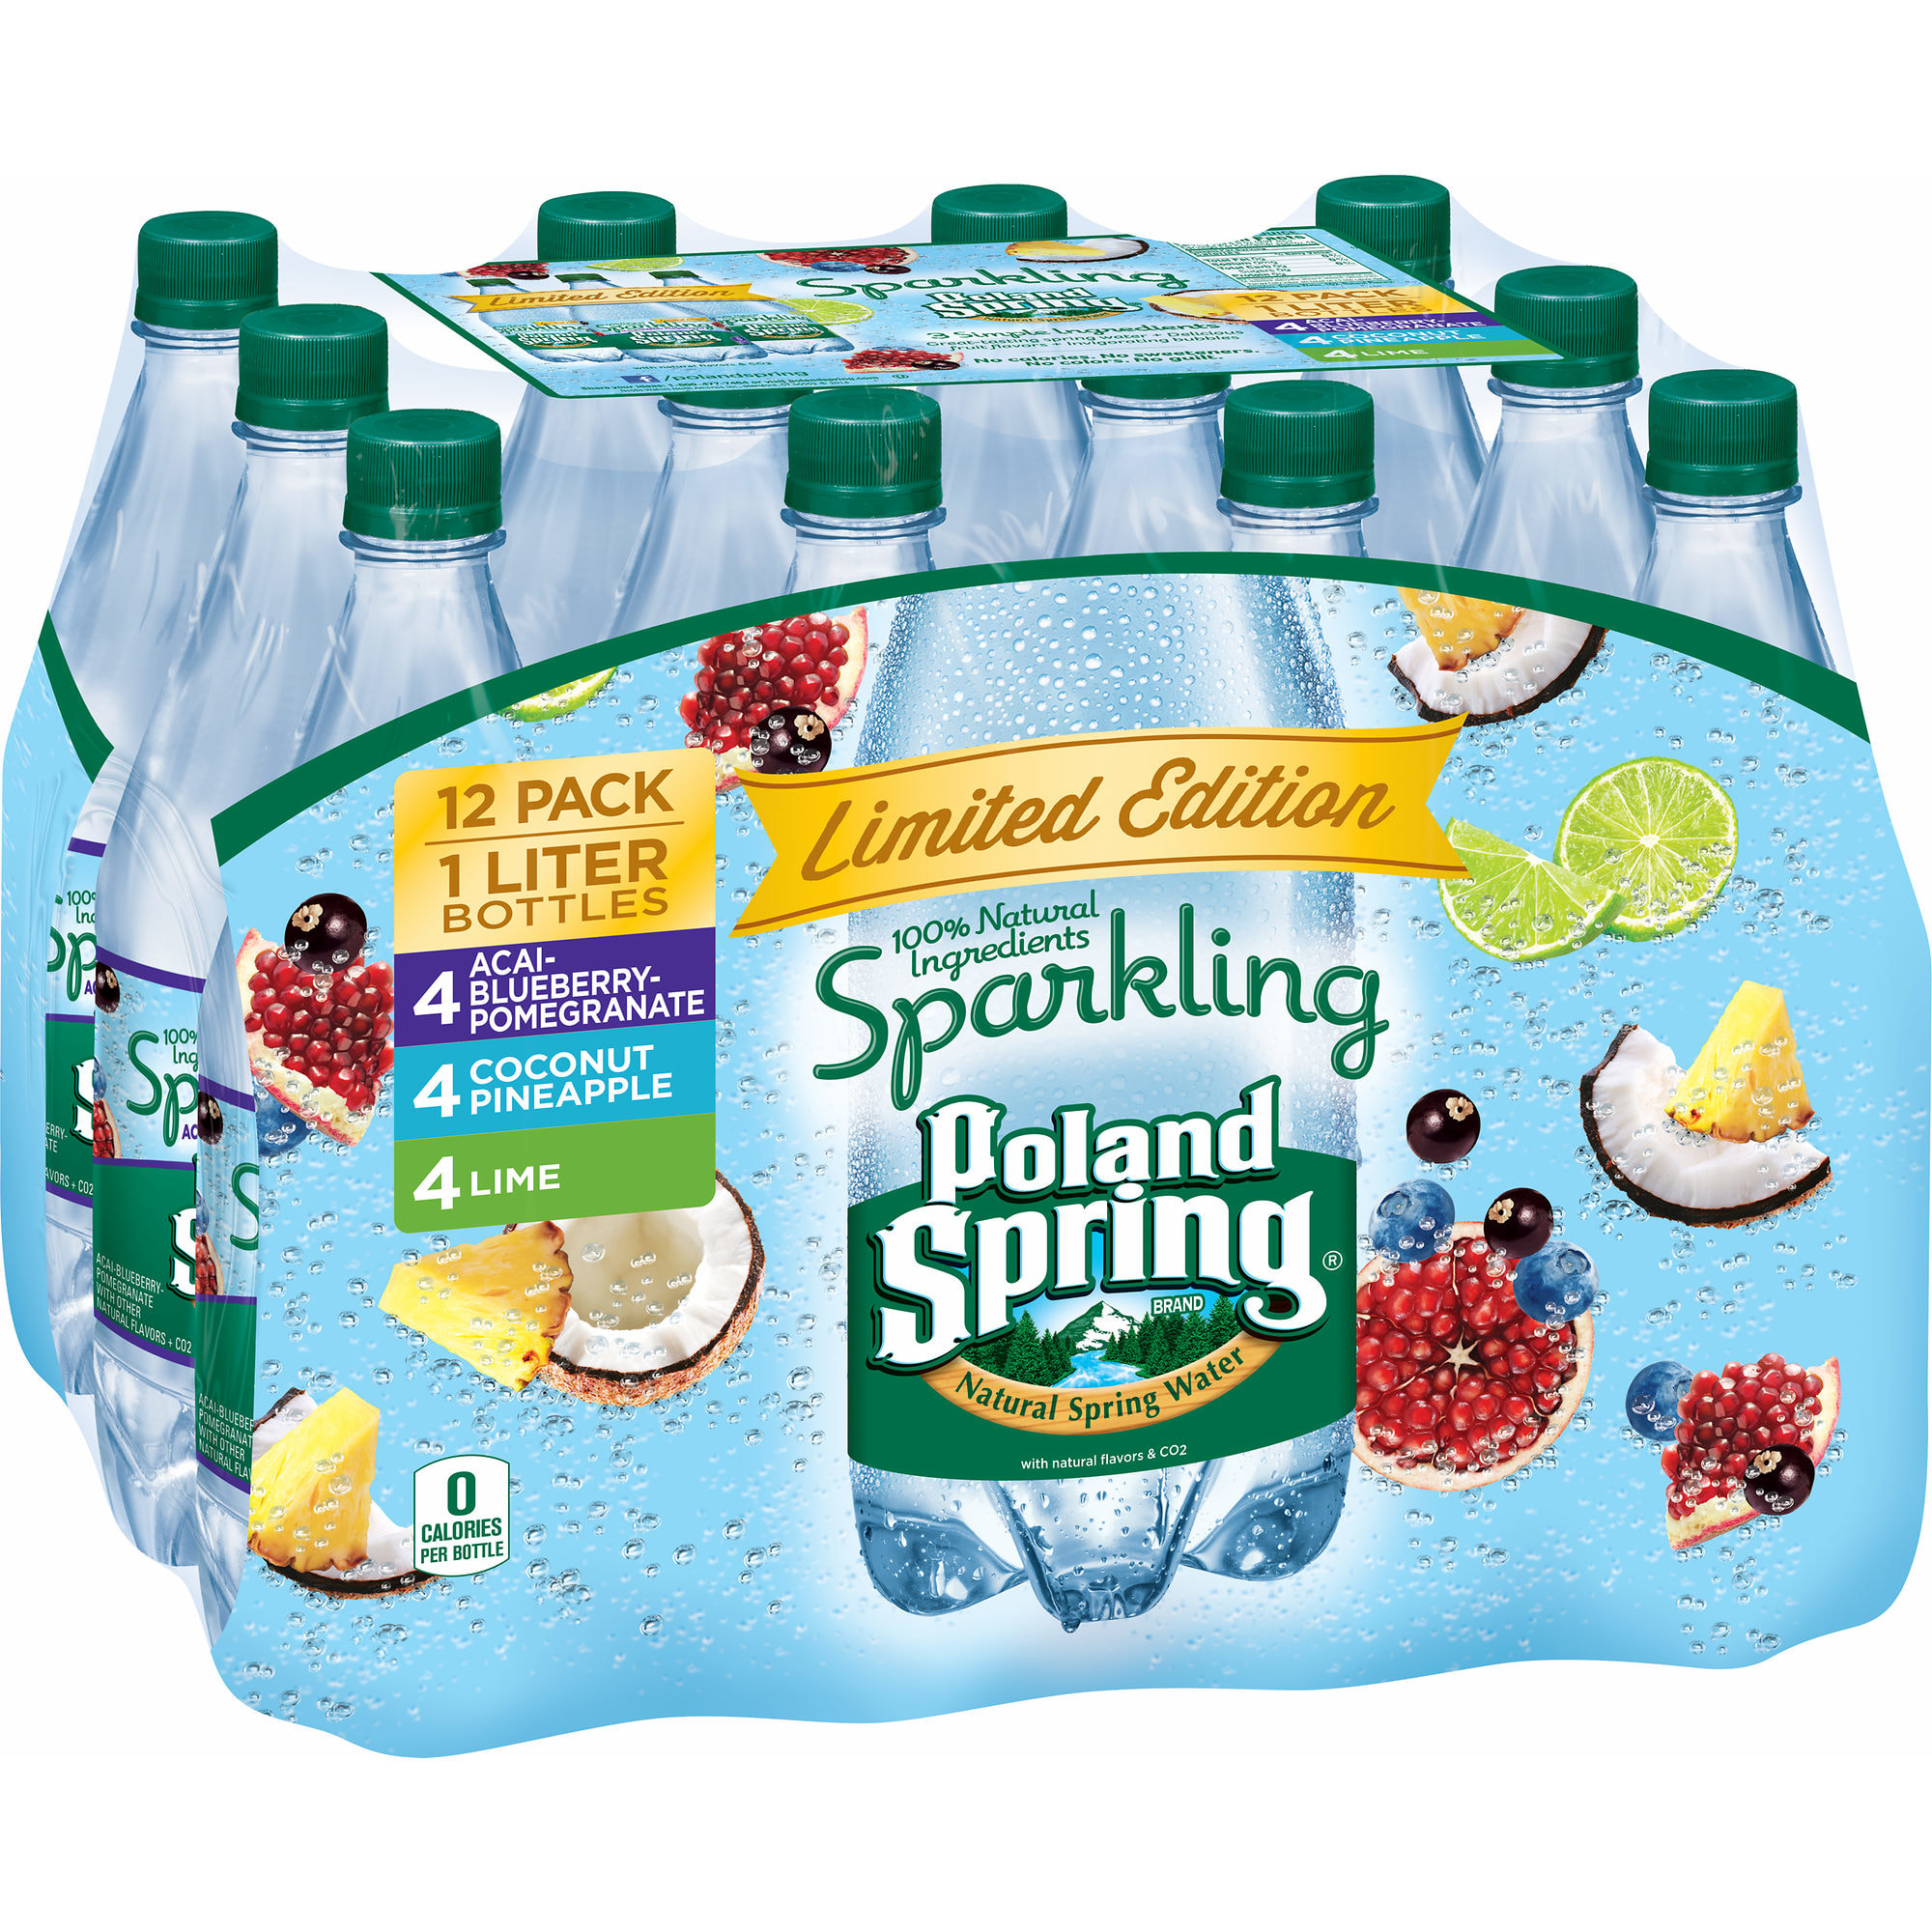 What Are The Natural Flavors In Poland Springs Sparkling Water